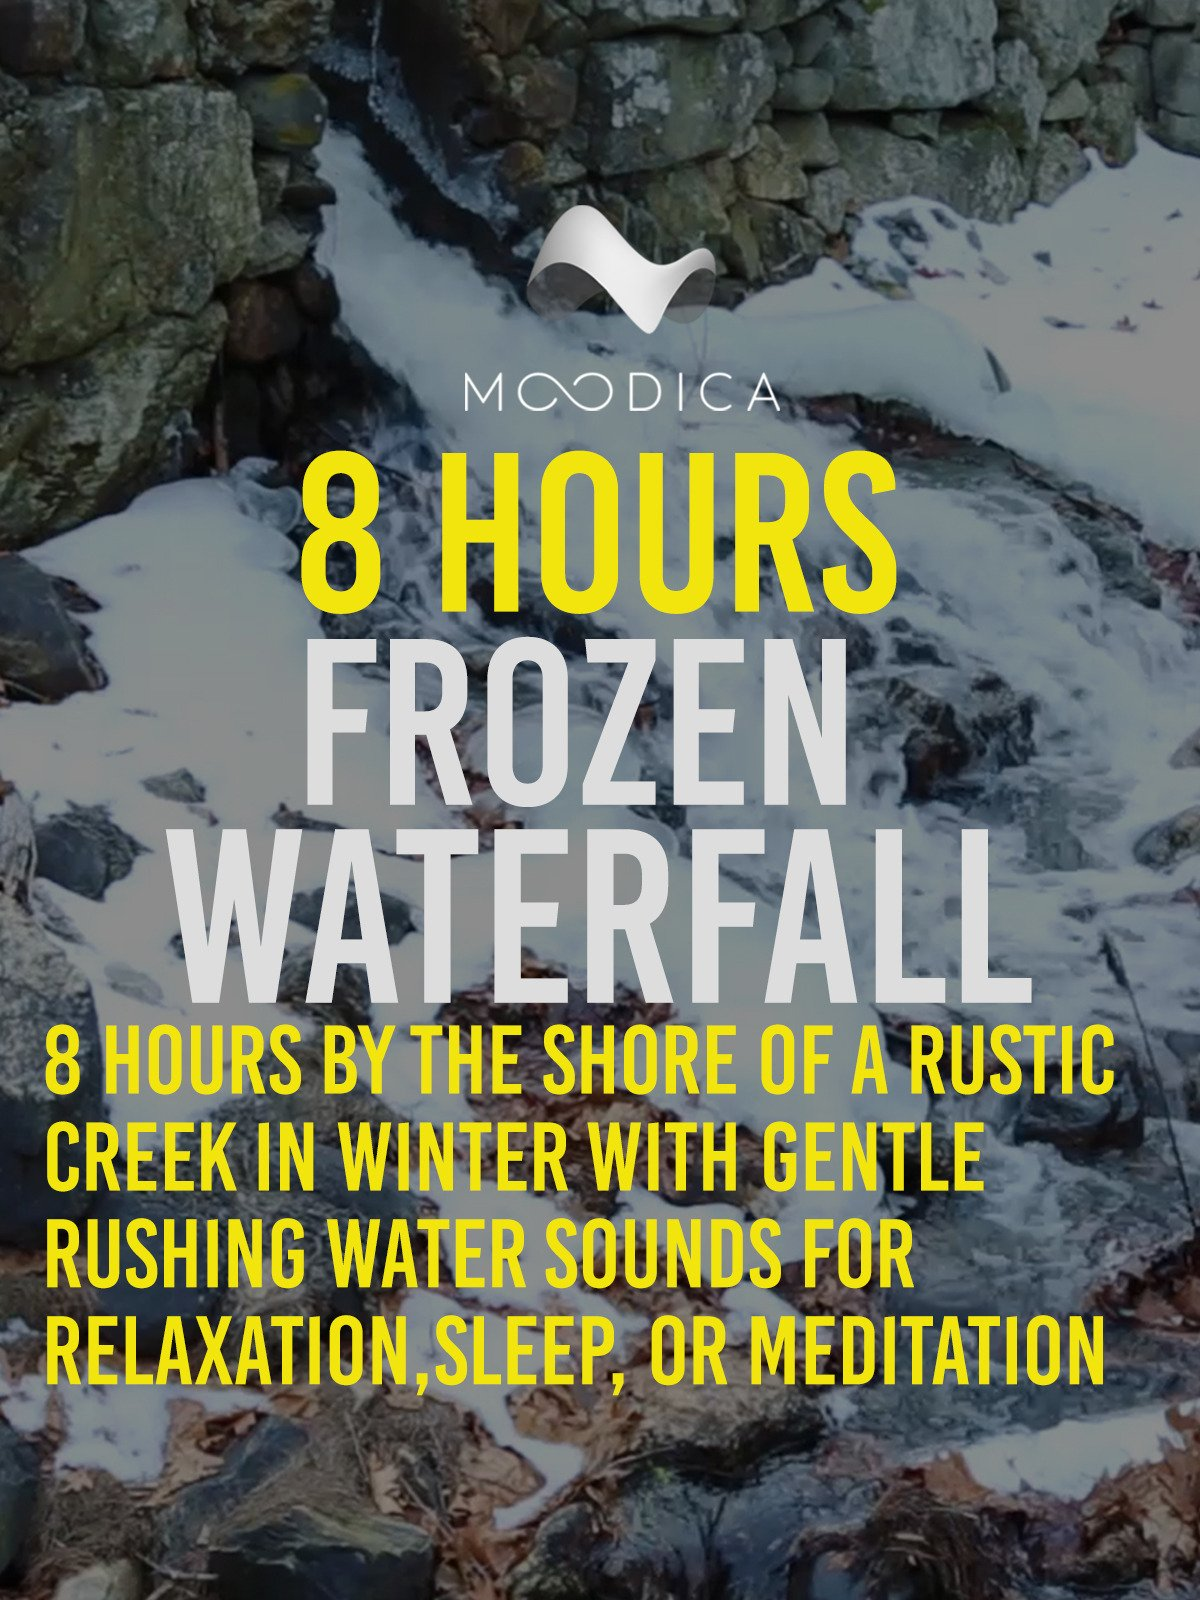 8 Hours: Frozen Waterfall: 8 Hours By The Shore Of A Rustic Creek In Winter With Gentle Rushing Water Sounds for Relaxation, Sleep, or Meditation